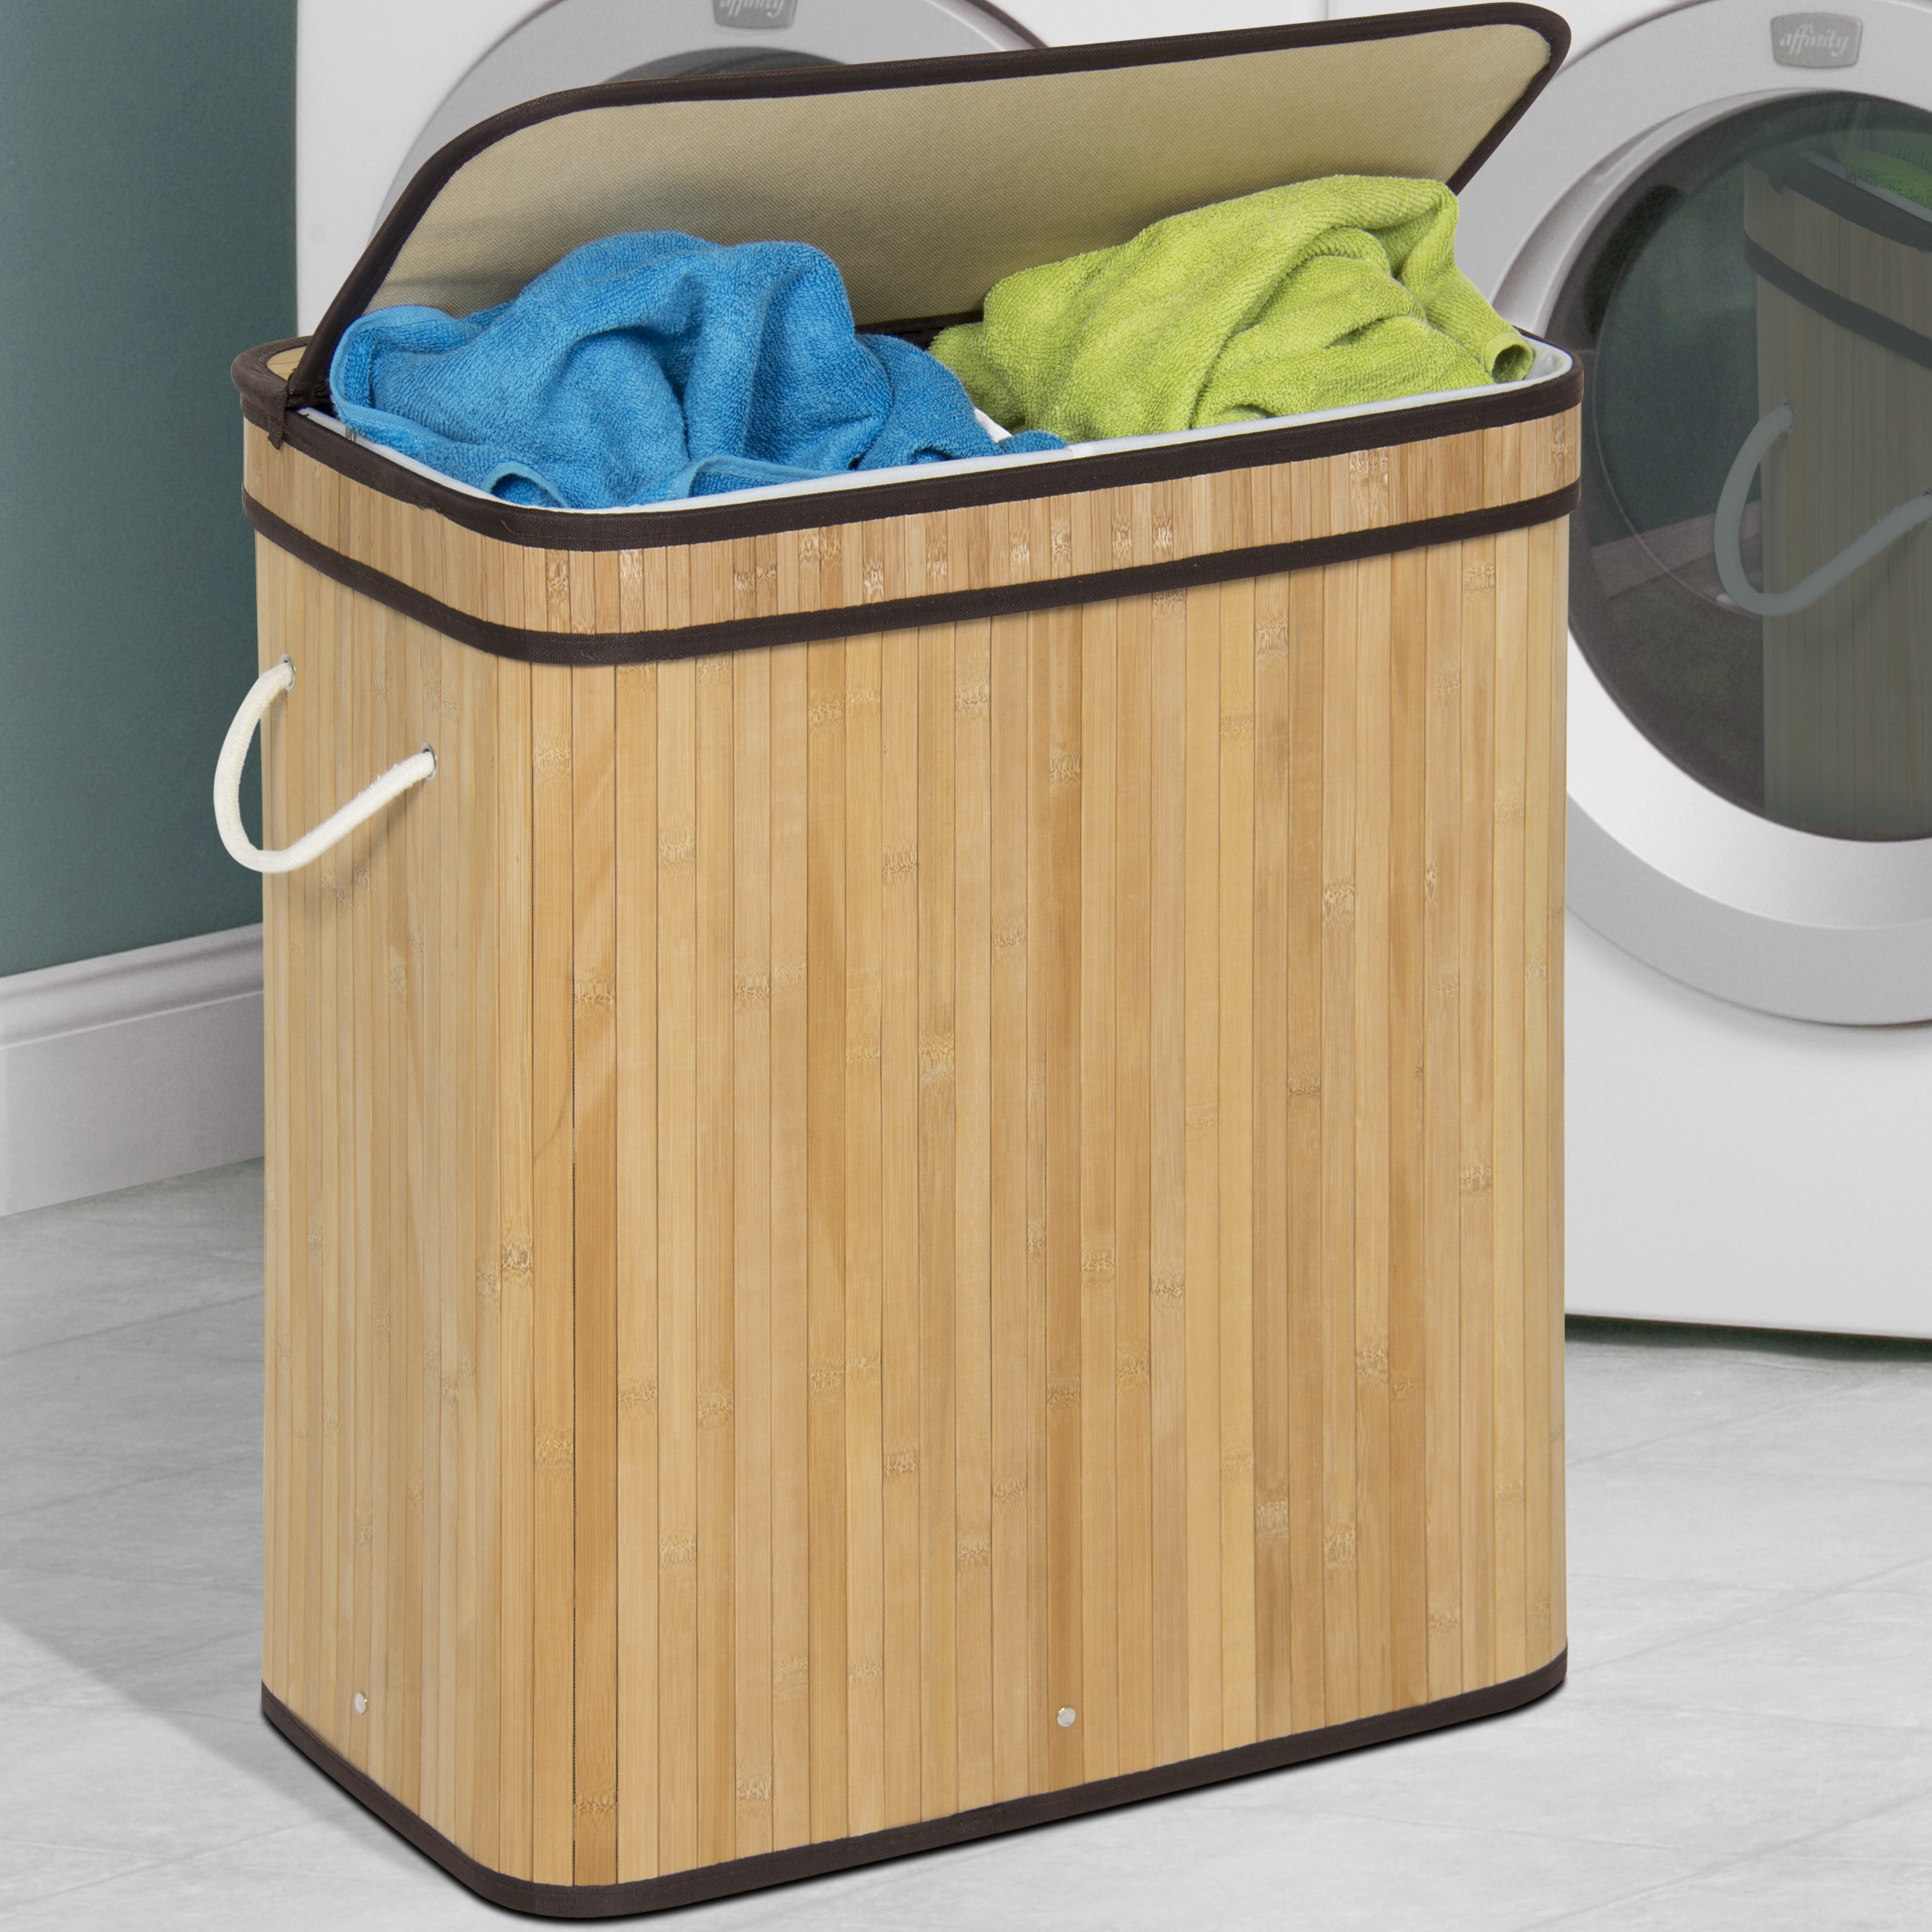 Best Choice Products Bamboo Double Hamper Laundry Basket Natural by